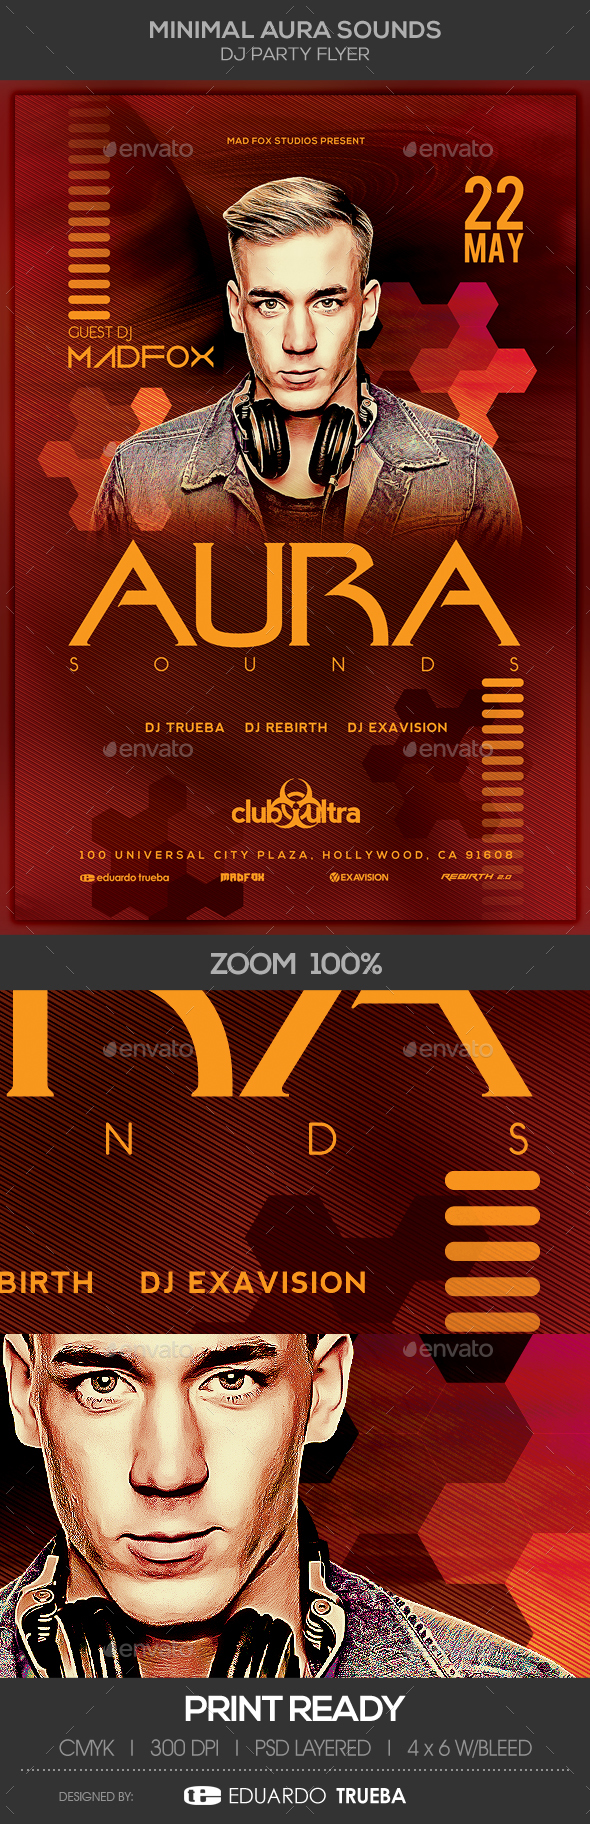 Minimal Aura Sounds Dj Party Flyer - Clubs & Parties Events